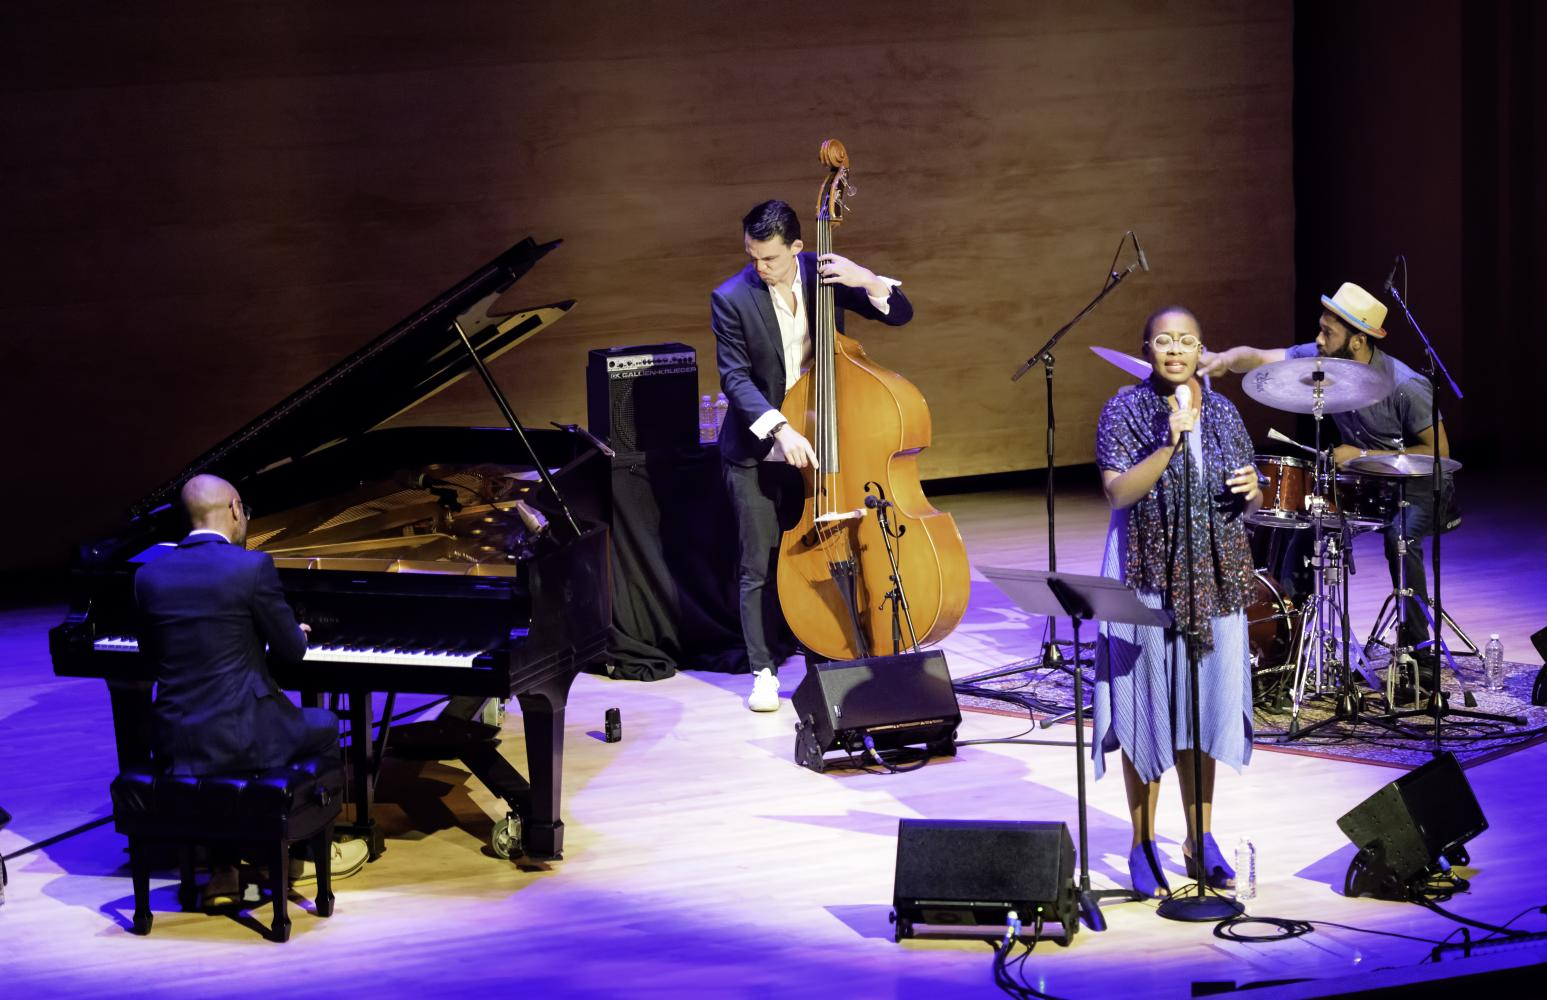 Aaron Diehl, Paul Sikivie, Cecile Mclorin Salvant And Lawrence Leathers At The Musical Instrument Museum (mim) In Phoenix